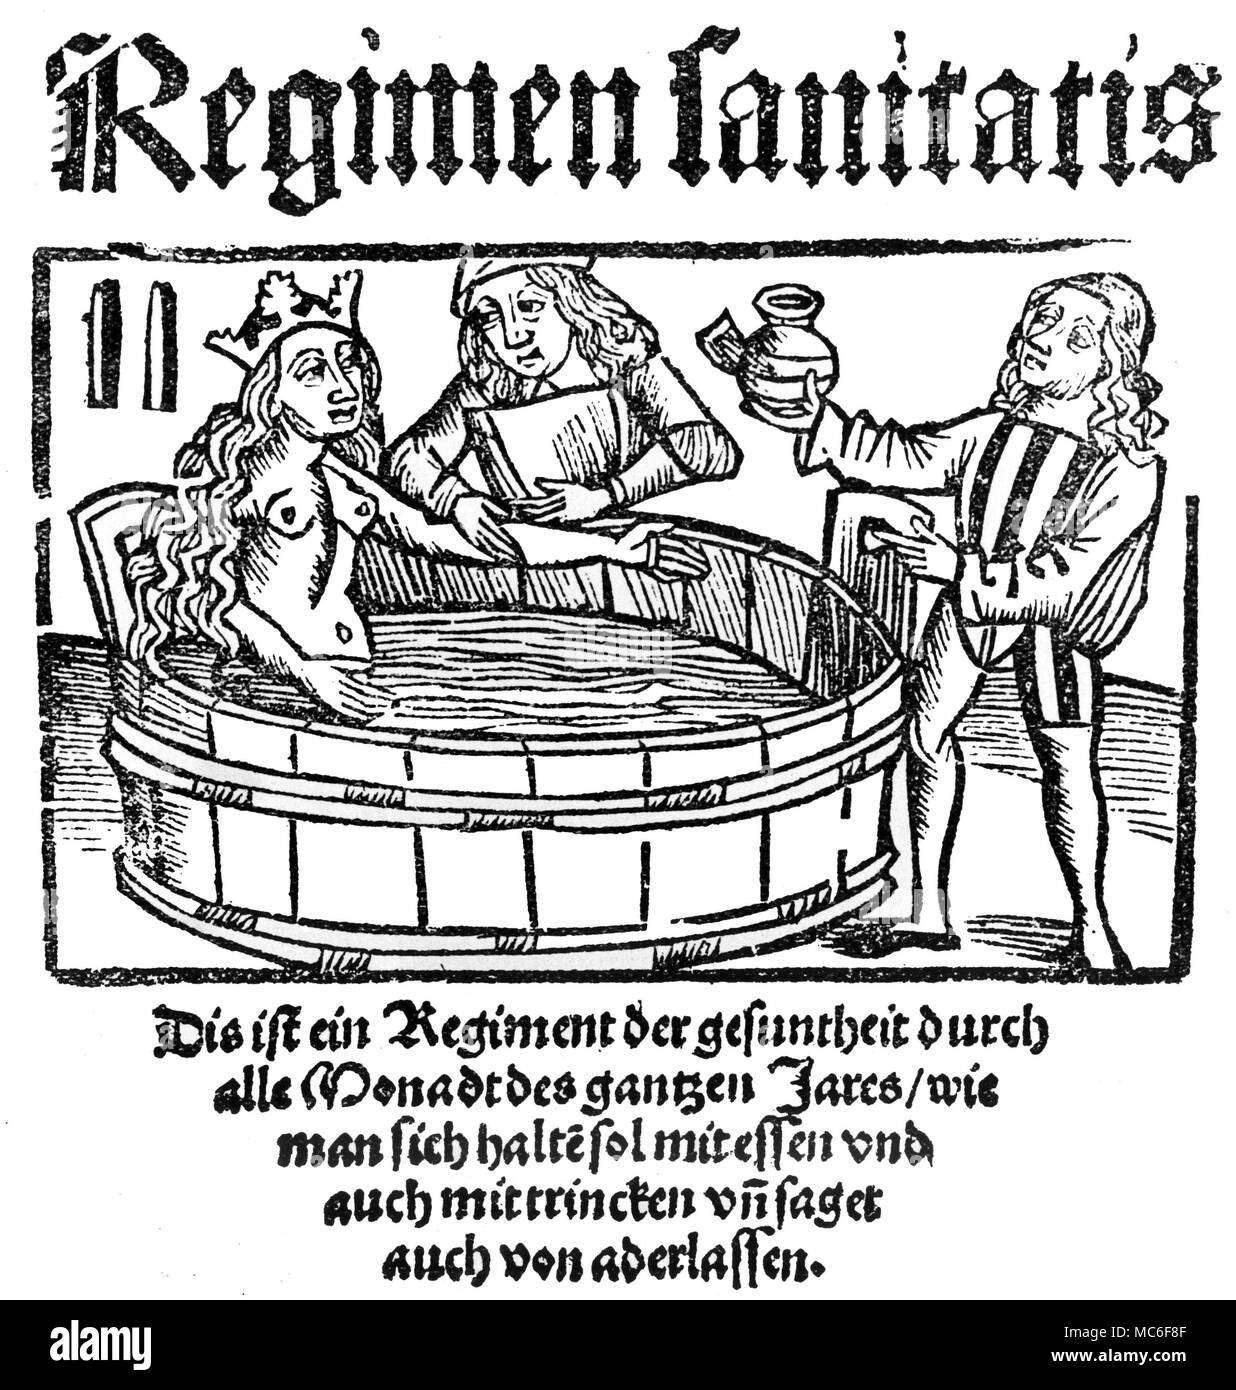 Woman undergoing water treatment from the 'Regimen Sanitatis', printed in Strassbourg in 1513 - Stock Image